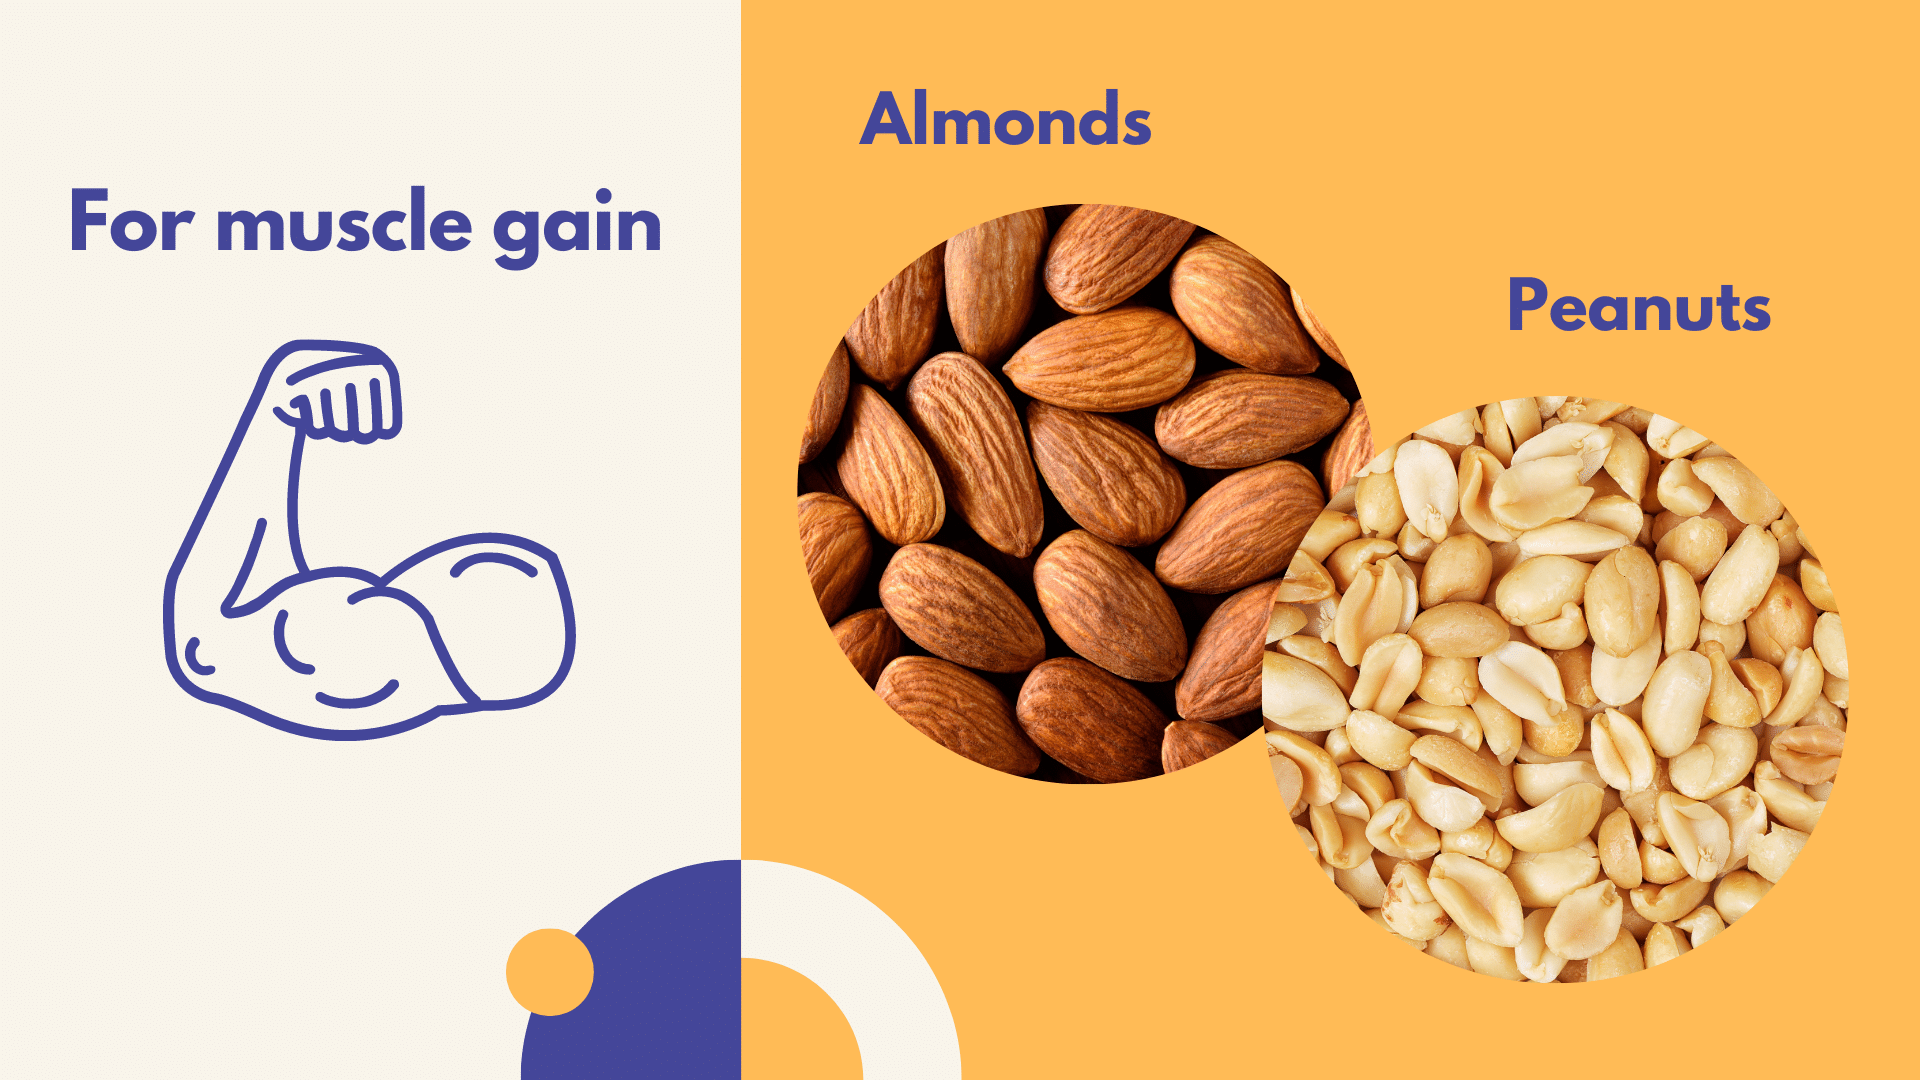 best nuts for muscle gain almonds peanuts